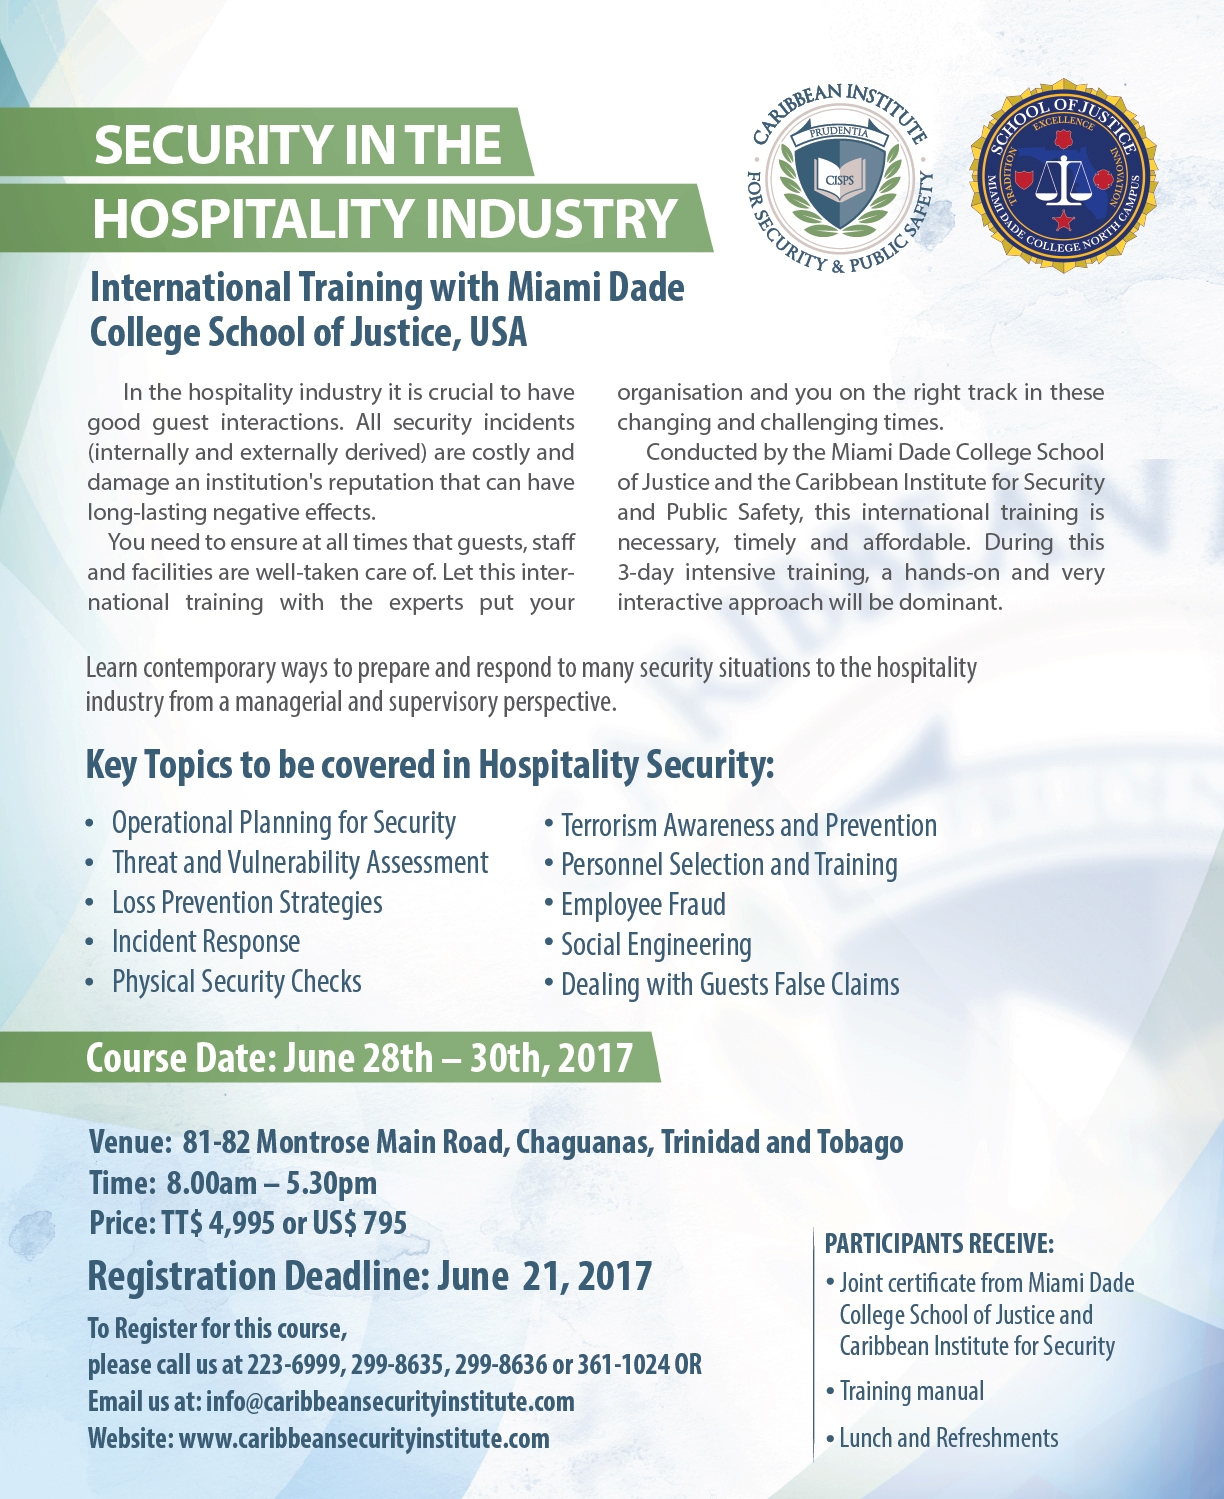 International Training - Security in the Hospitality Industry